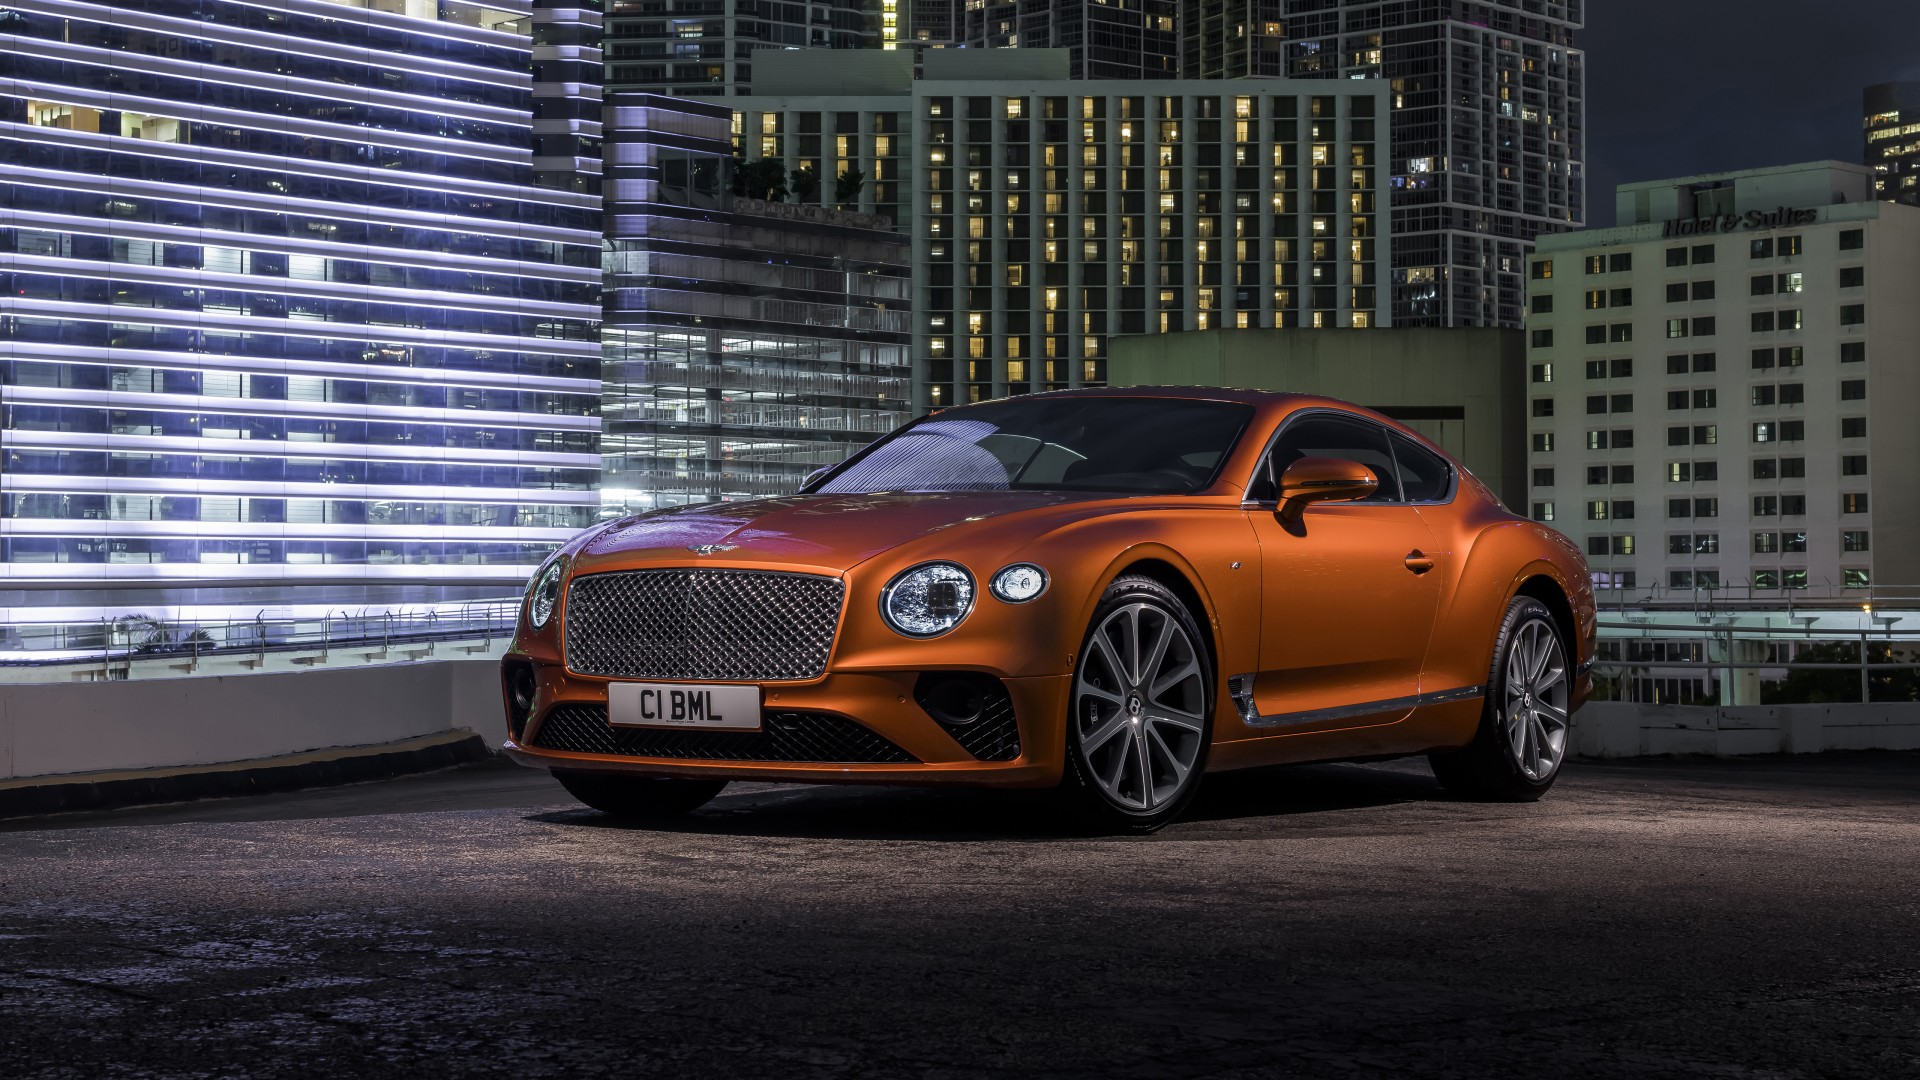 bentley continental gt    wallpaper hd car wallpapers id